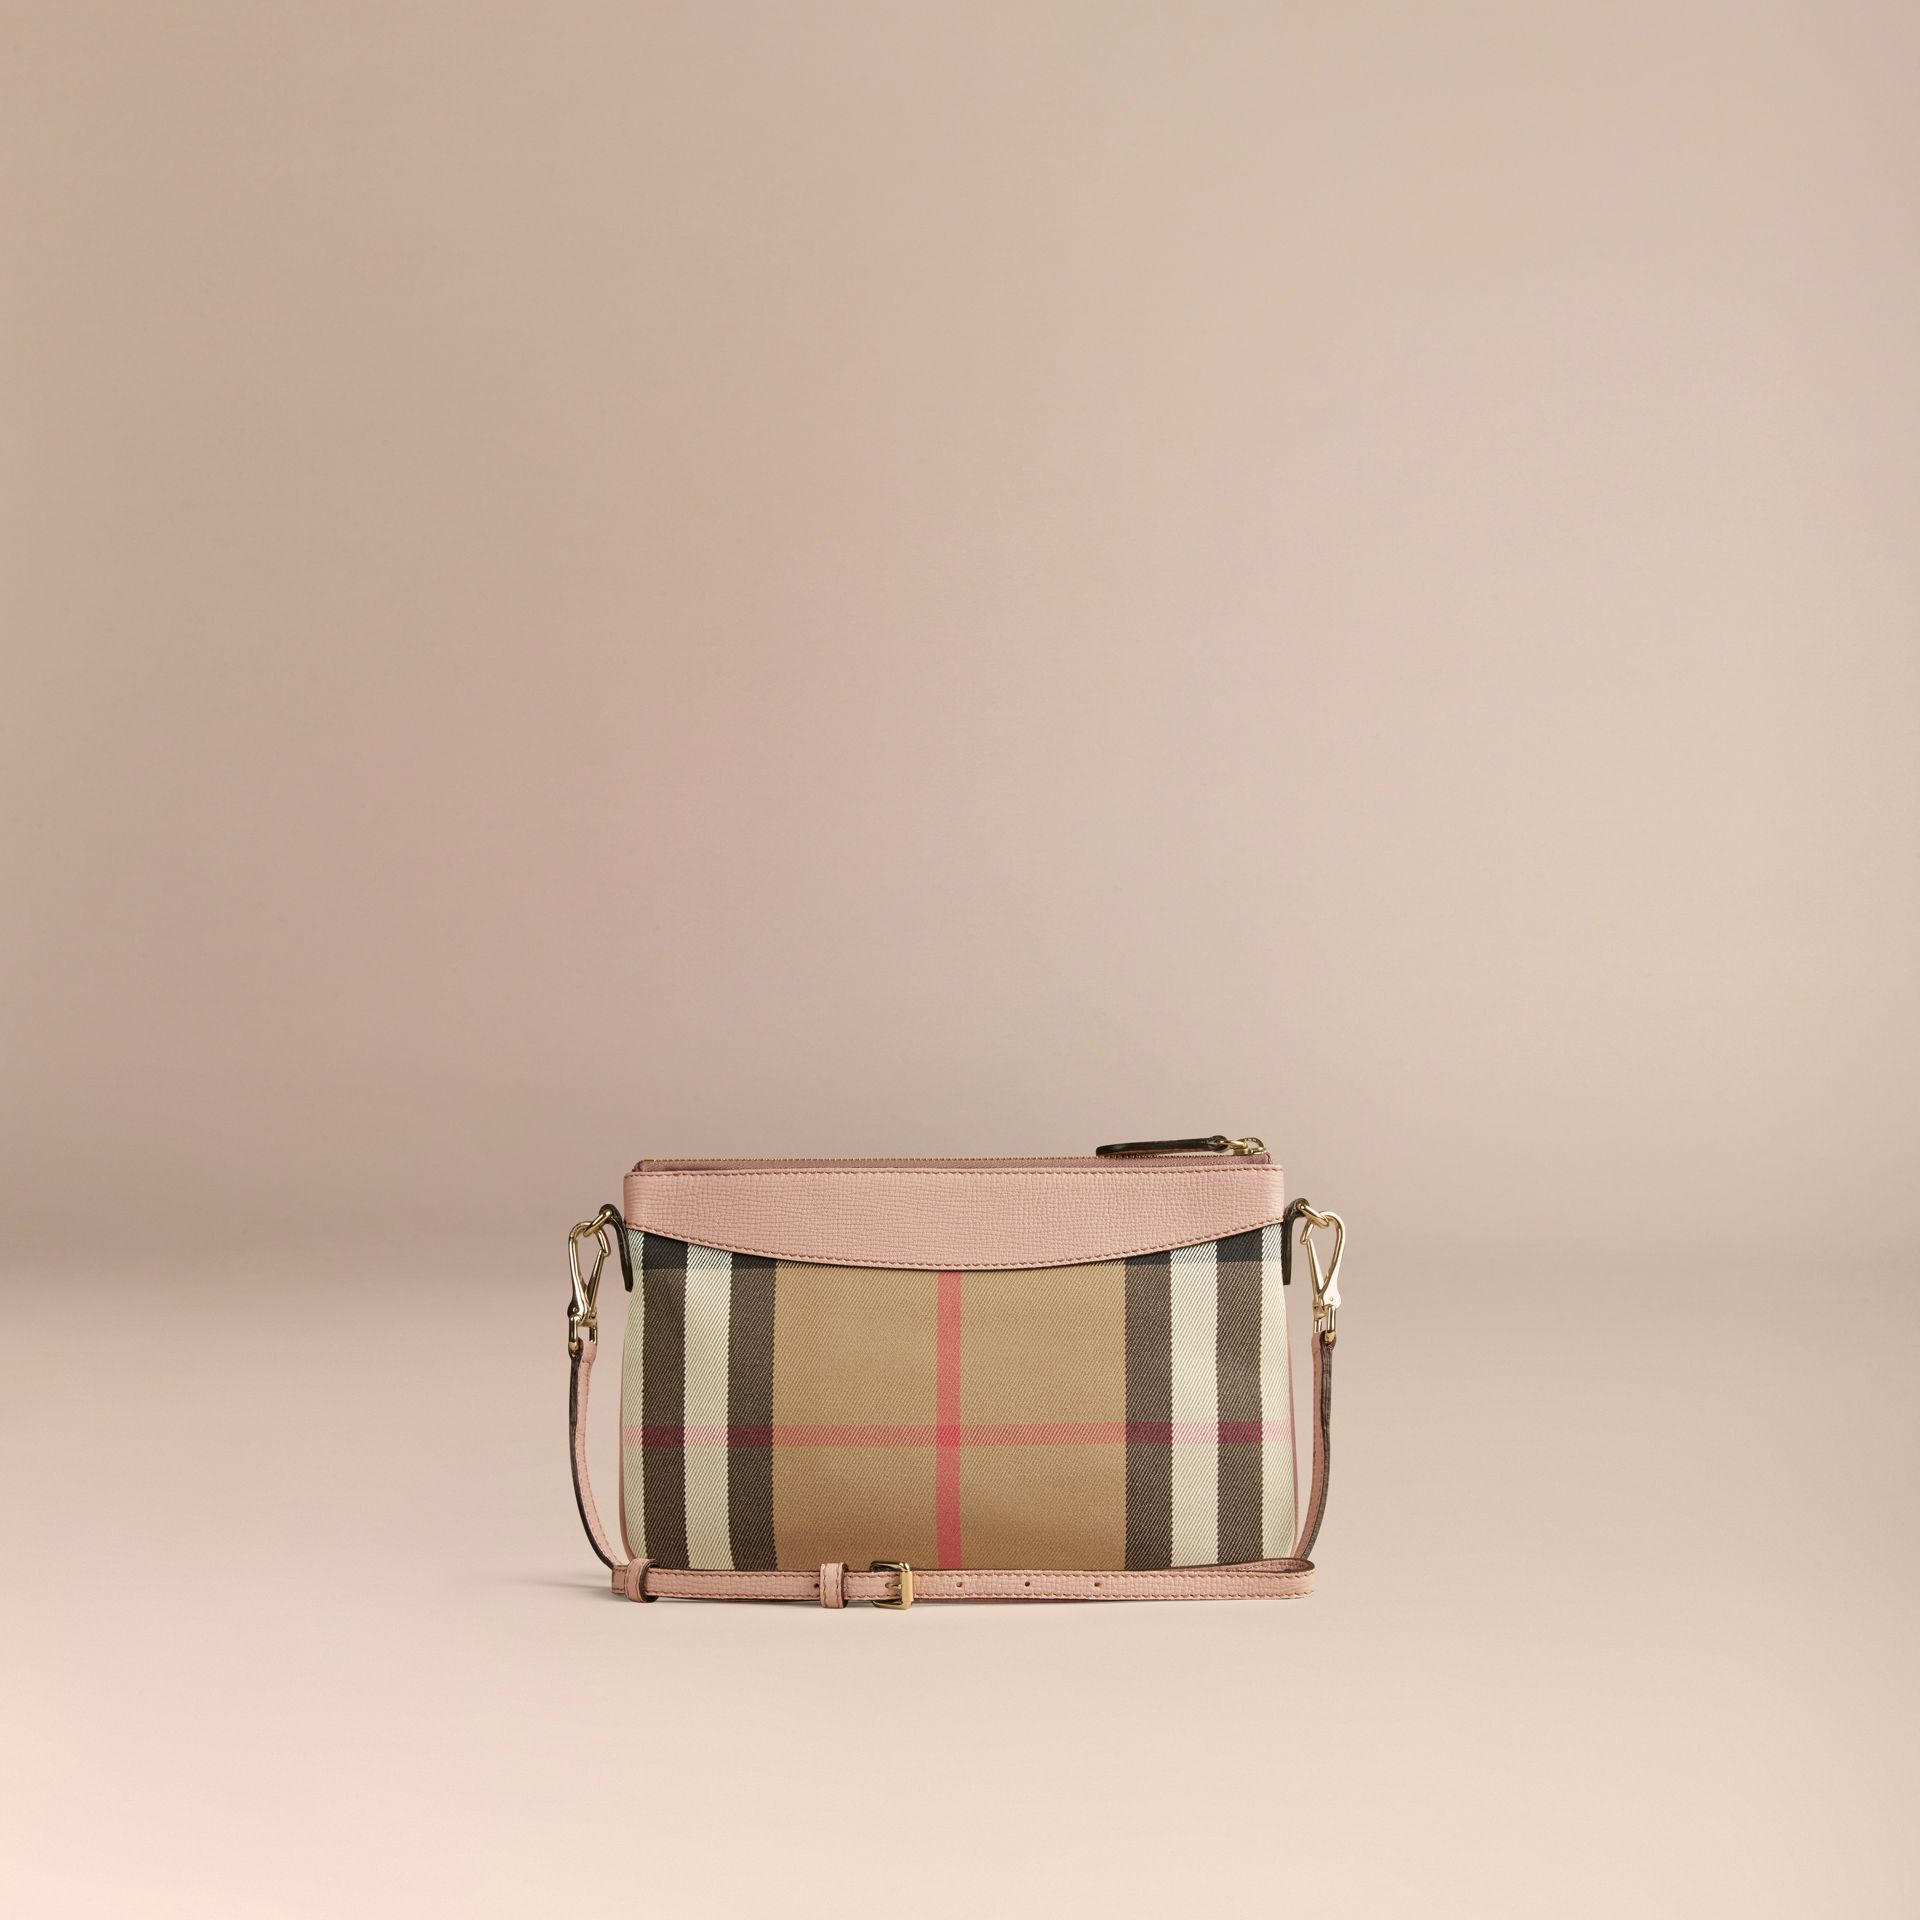 House Check and Leather Clutch Bag in Pale Orchid - Women | Burberry - gallery image 3